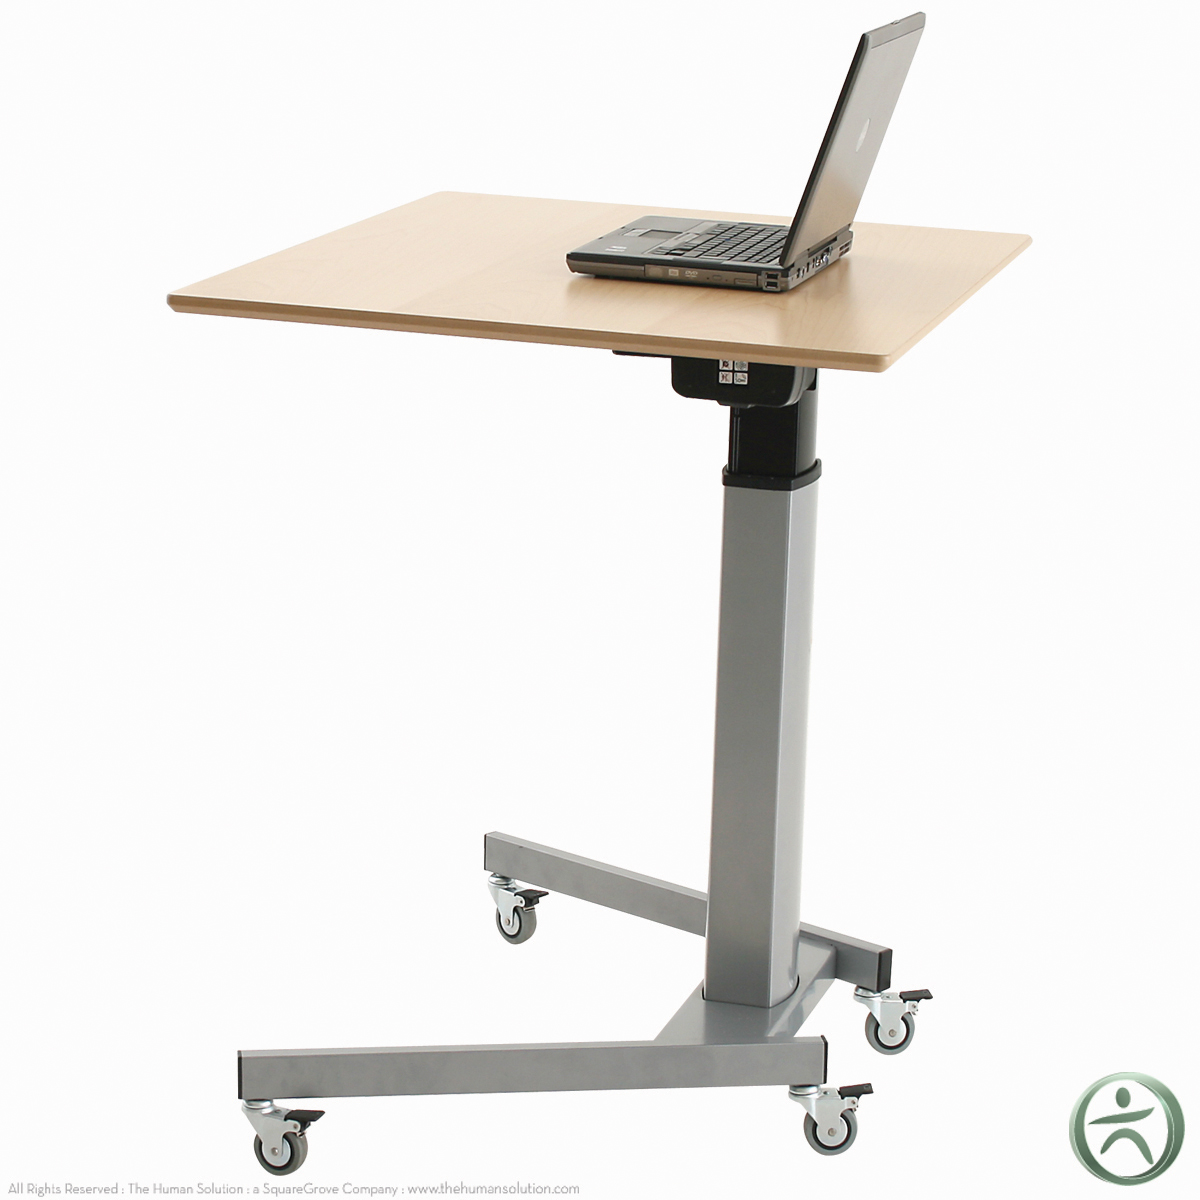 Shop conset 501 19 8x095 laminate electric sit stand desk for Motorized sit stand desk